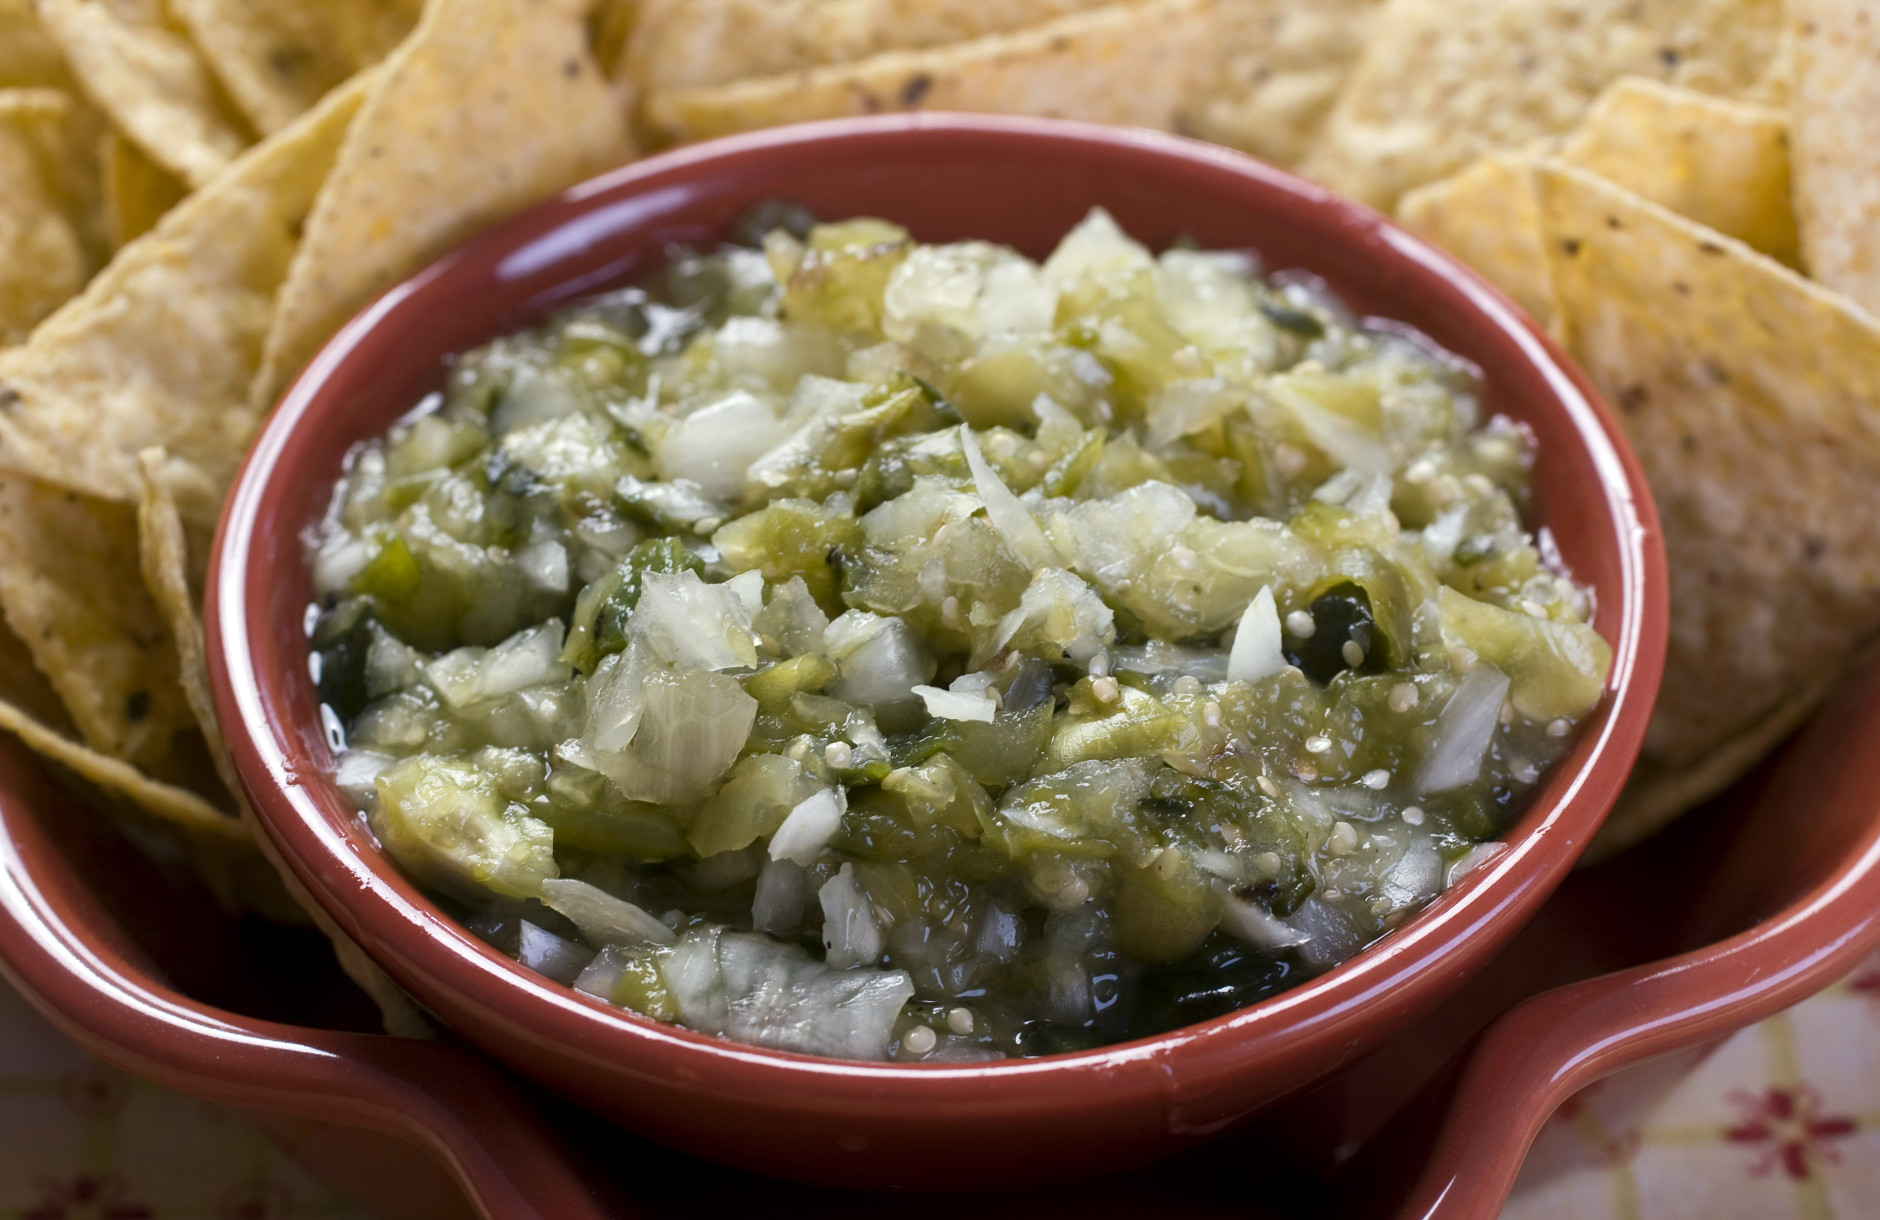 This Aug. 30, 2010 photo shows tomatillo, poblano and sweet onion salsa. Tomatillos are an often overlooked veggie that have traits similar to tomatoes and can be used raw or cooked. Grab some the next time you are at the market and try them in this salsa recipe.   (AP Photo/Larry Crowe)